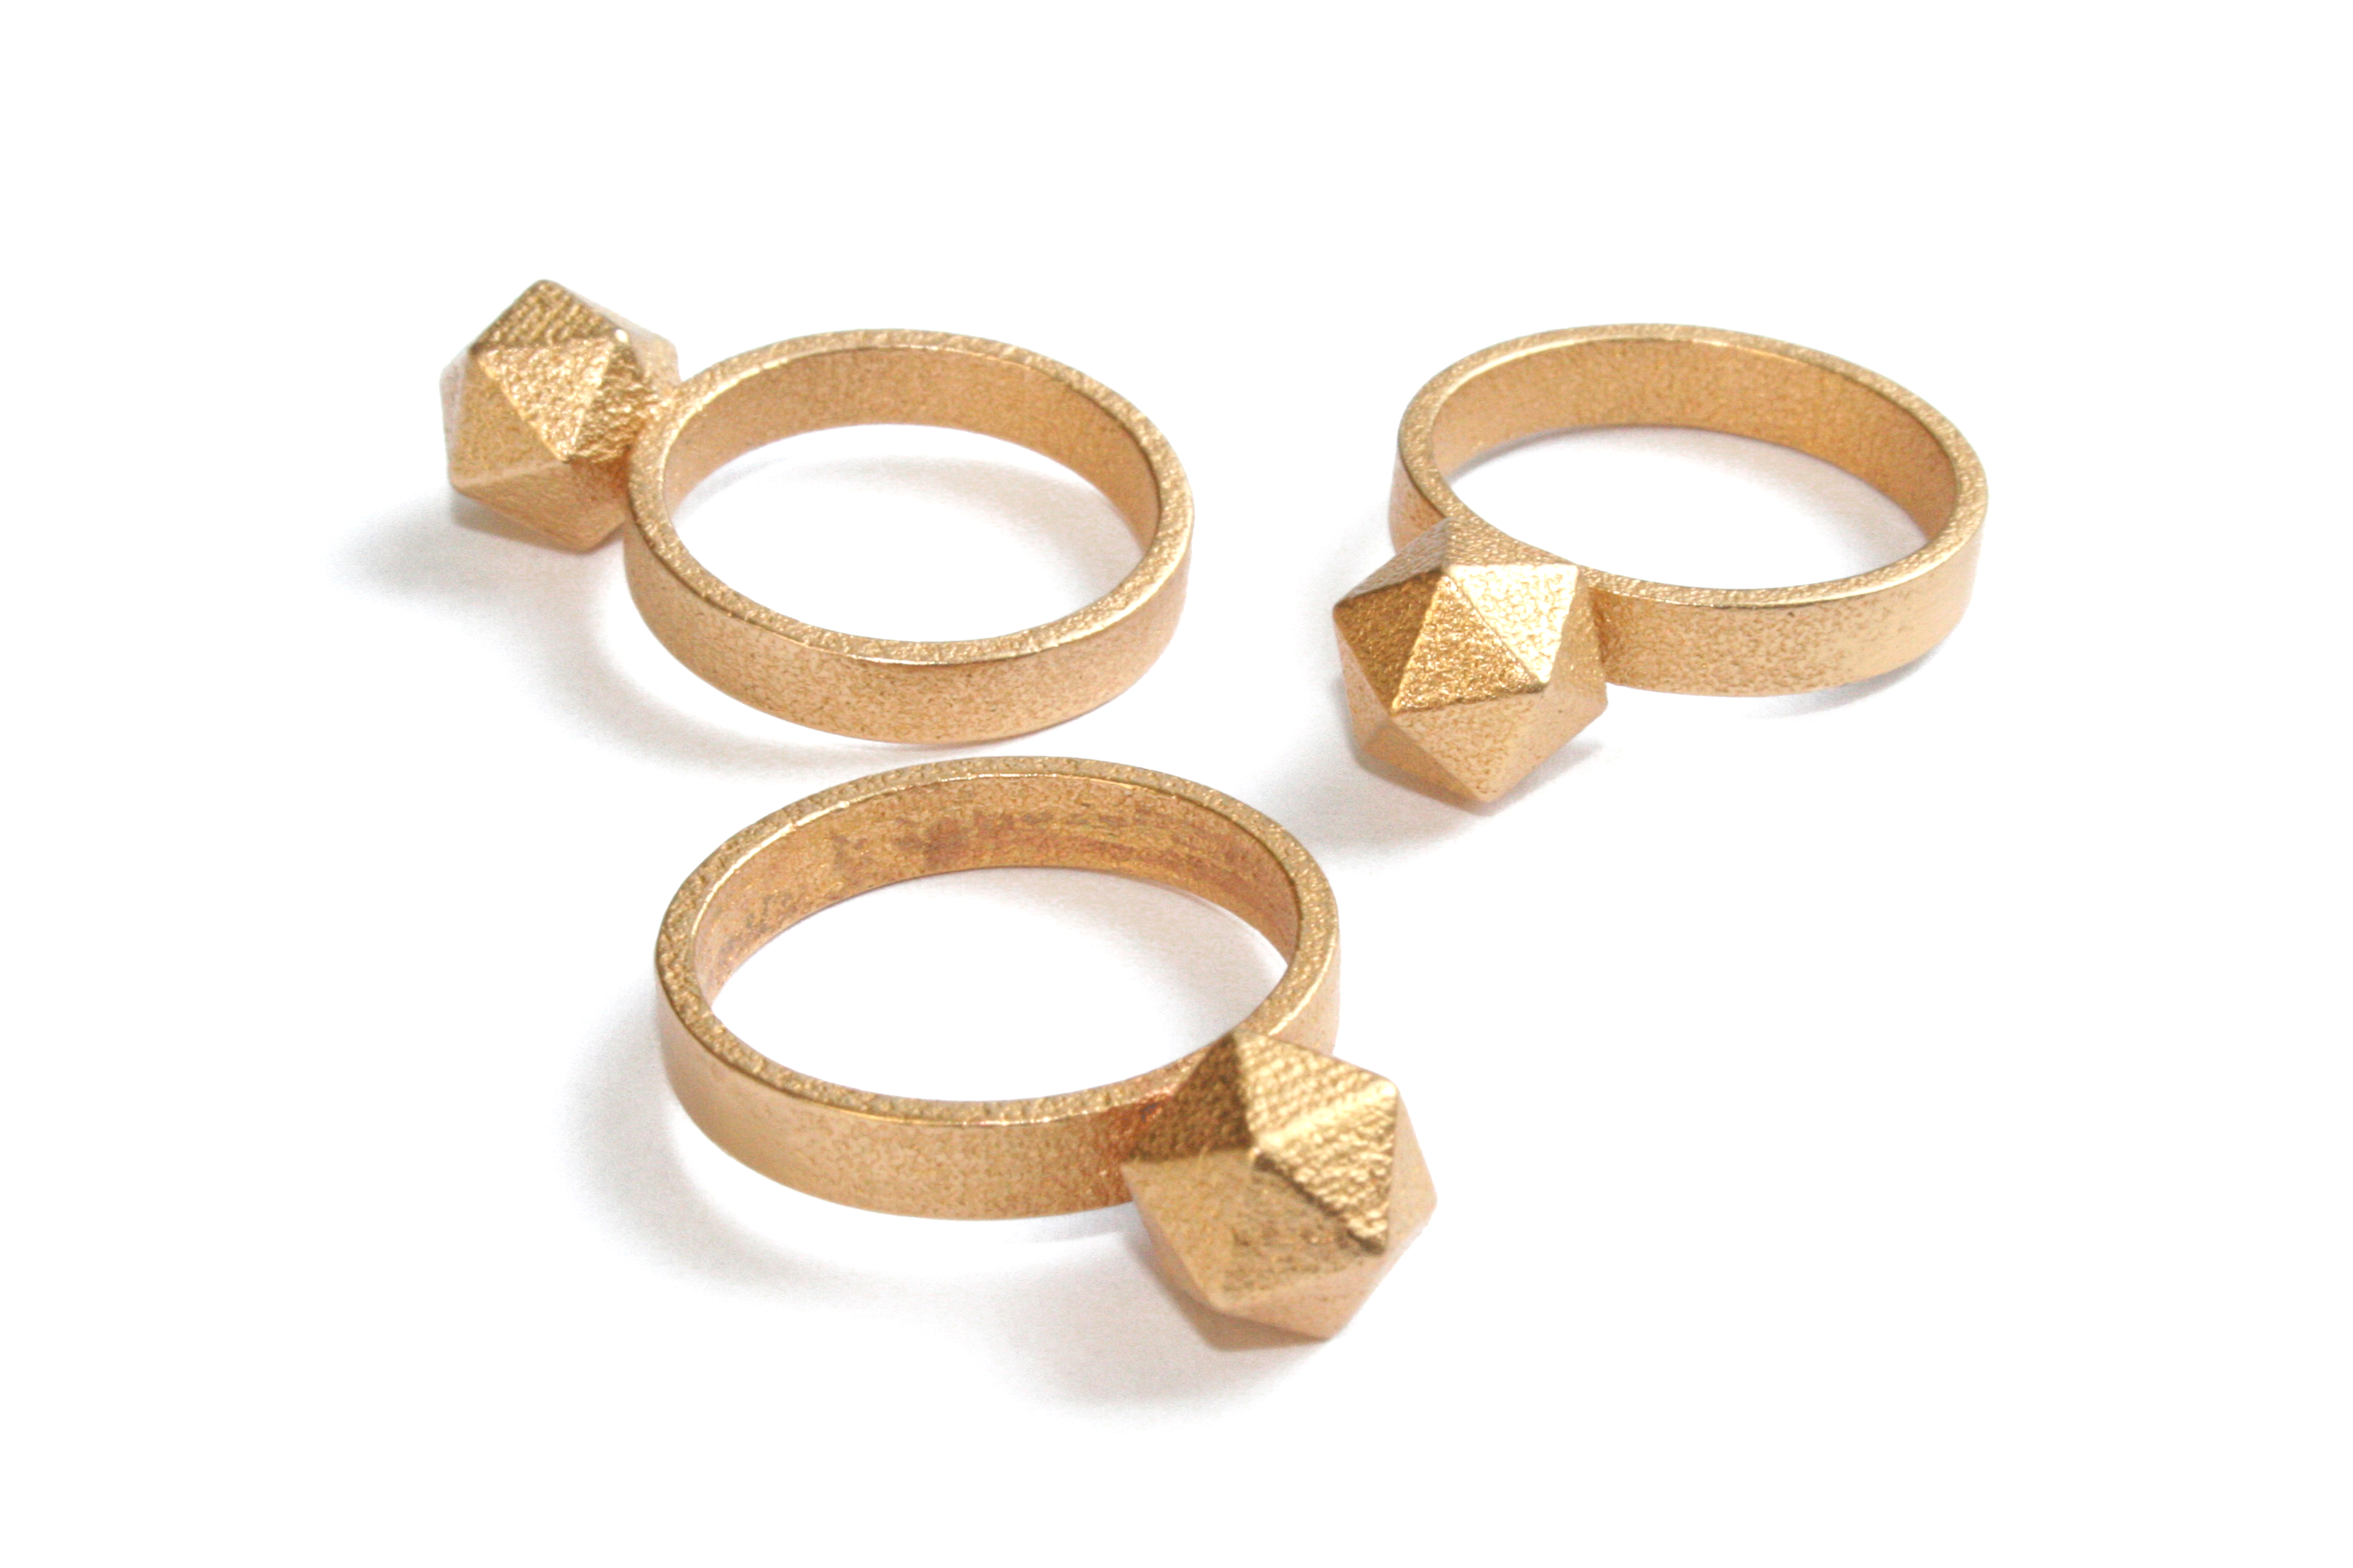 216847 geom gold mini ring daniellevroemen 5c98f2 original 1467882113